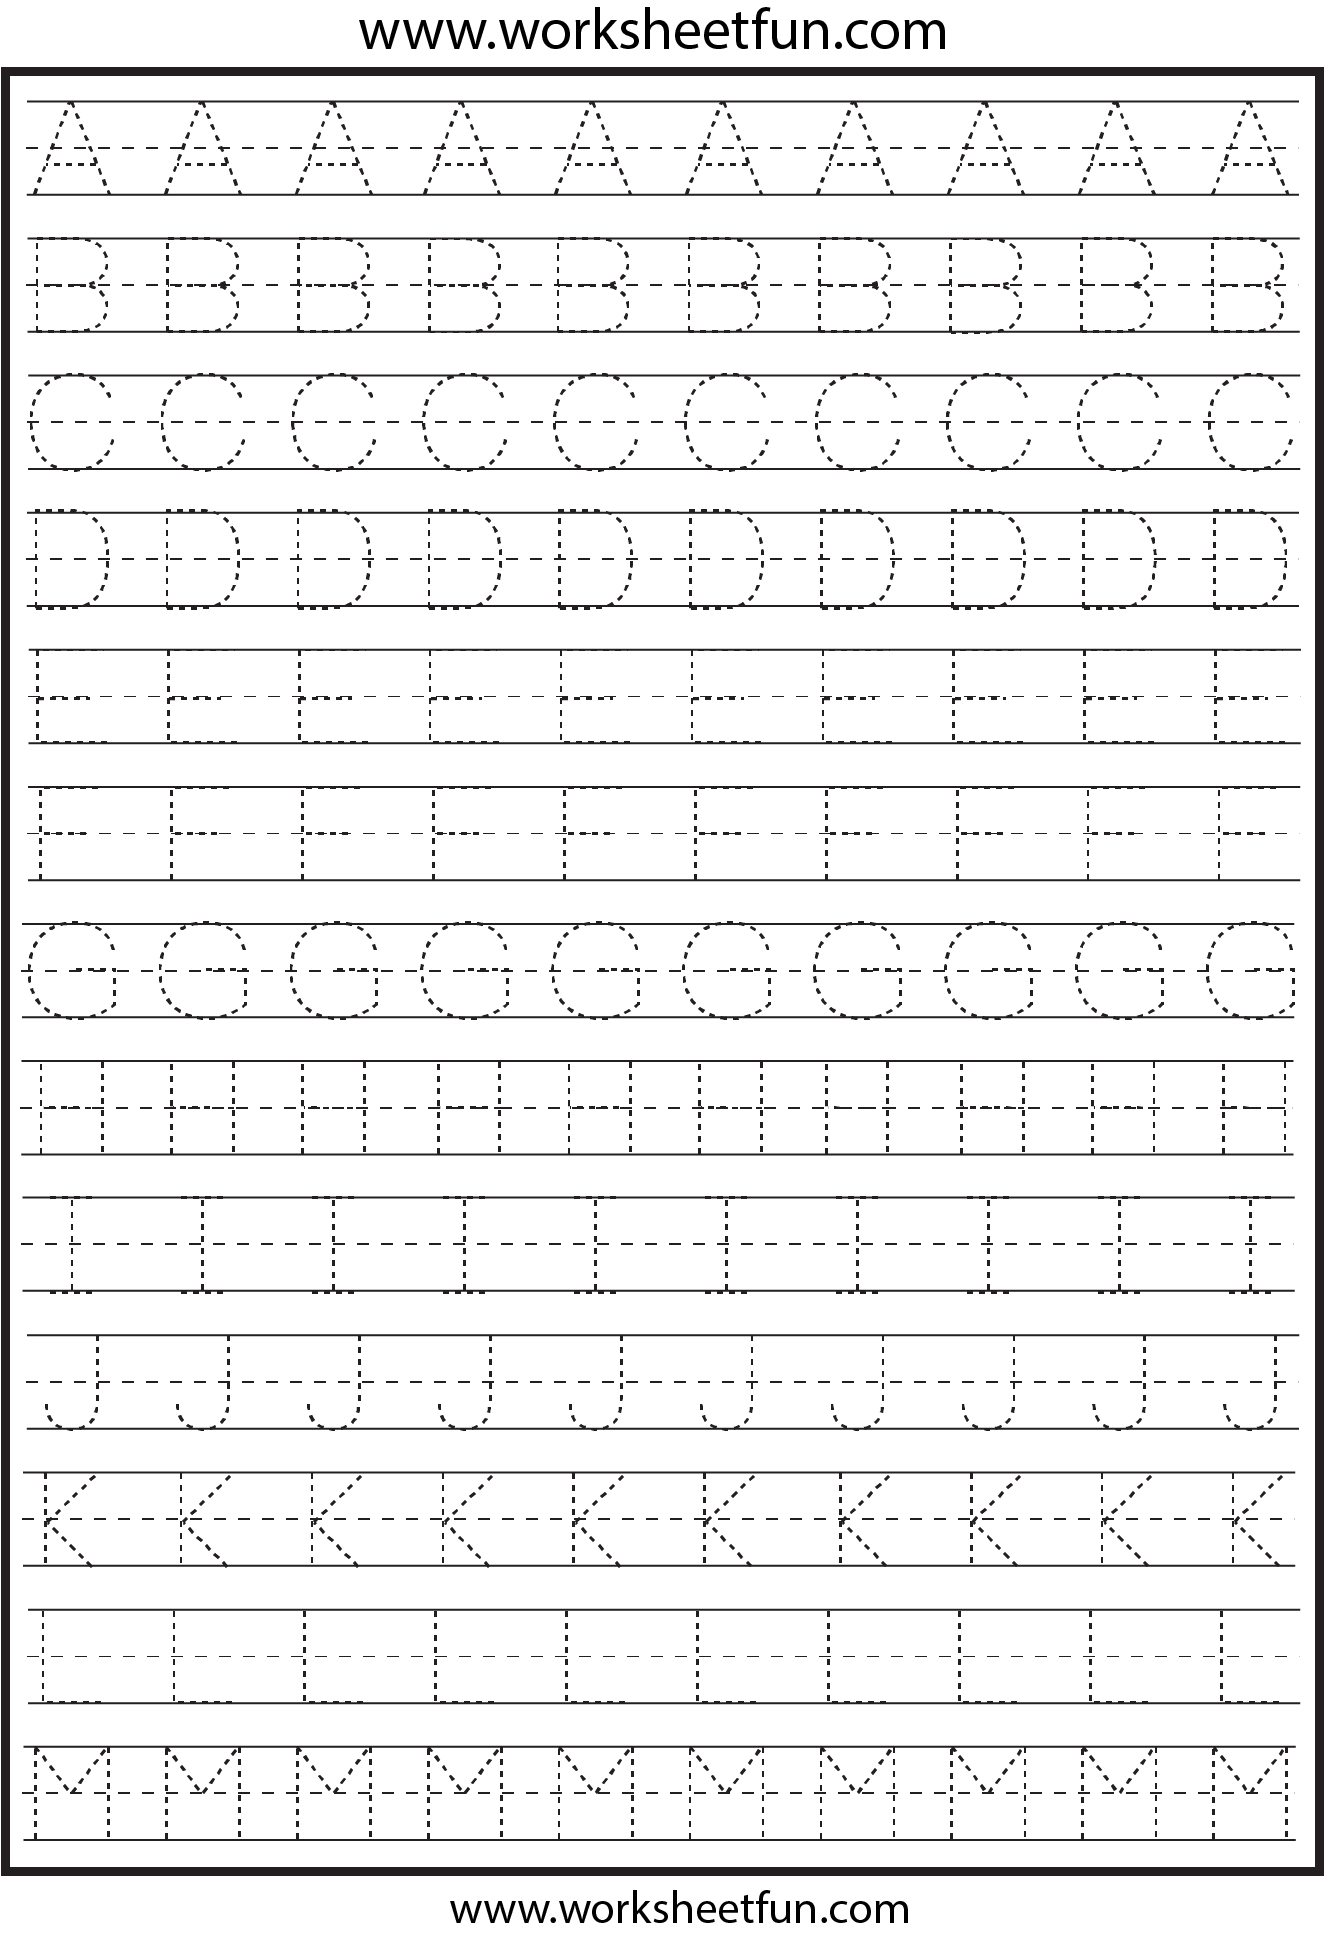 worksheet Tracing Letter Worksheets letter tracing i need a ton of these printed lol school stuff worksheets for kindergarten capital letters alphabet 26 free pri